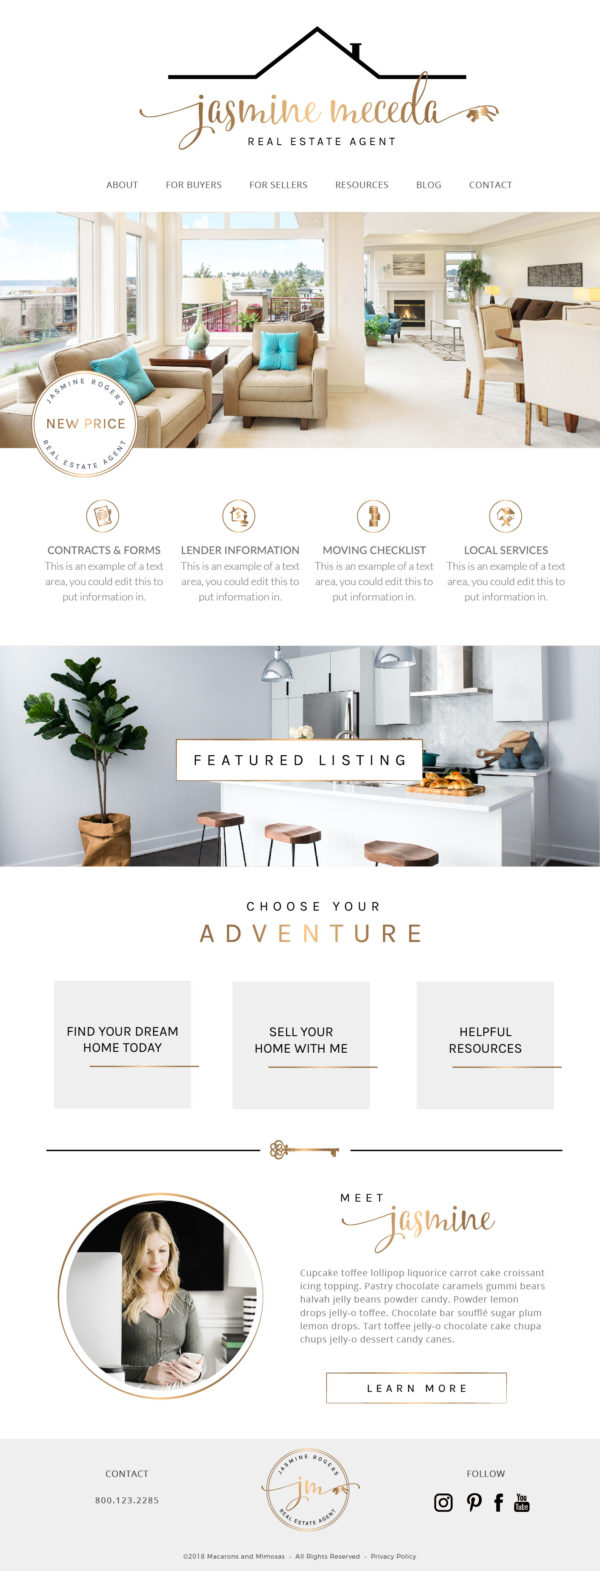 Real Estate Website Template, Real Estate Wordpress Theme, Realtor Website, Realty Company Website, Web Kit for Real Estate Agents